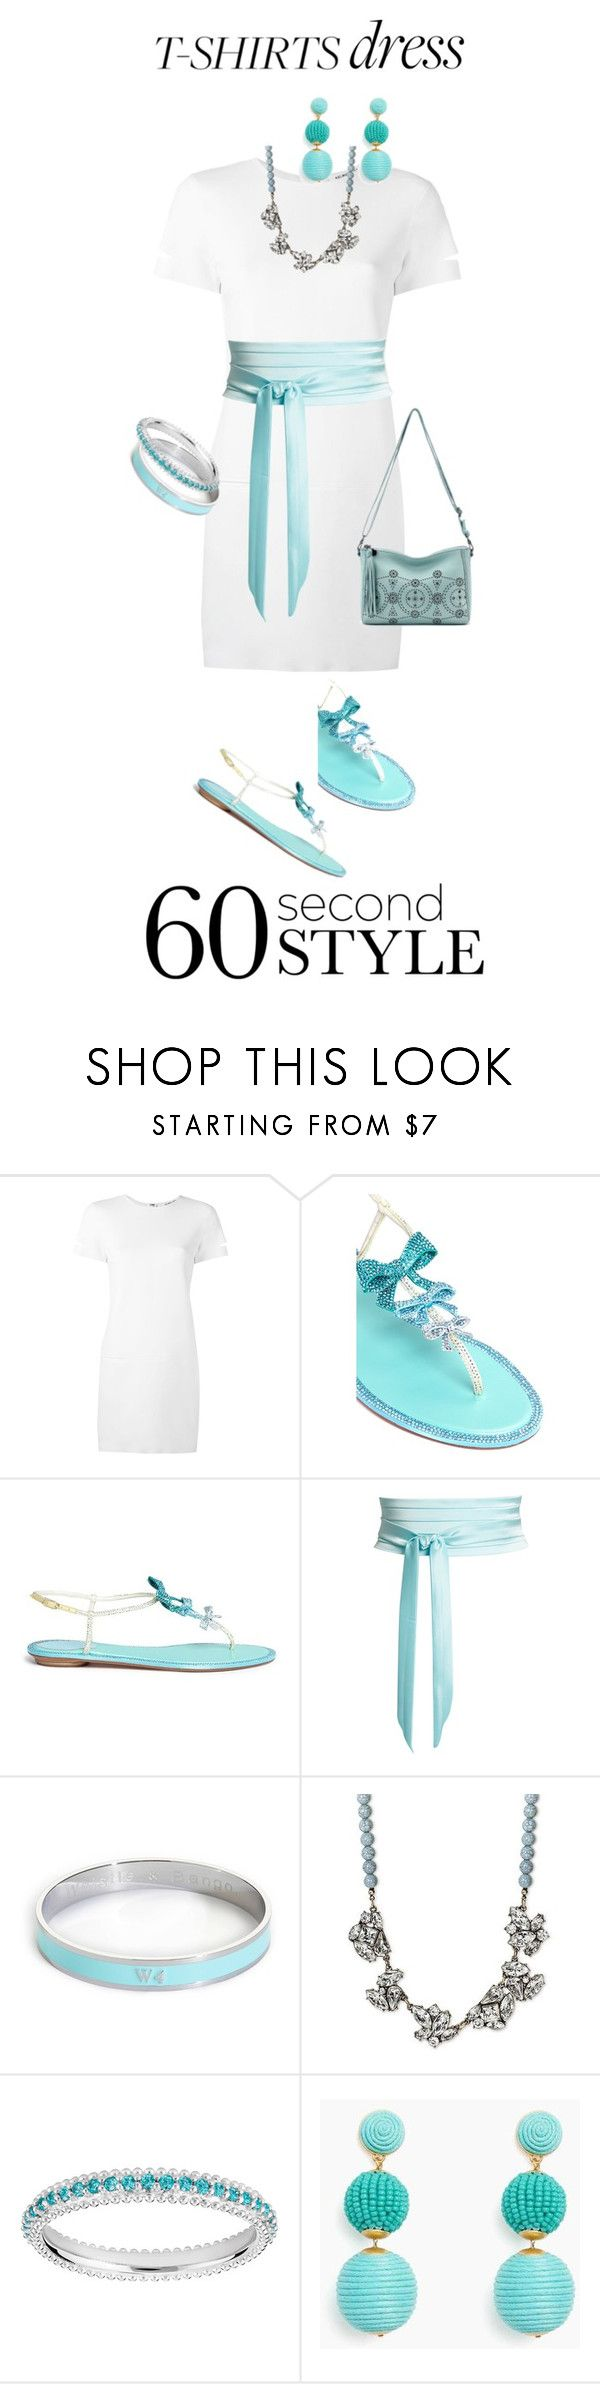 """""""60-Second Style: The T-Shirt Dress"""" by miriam-witte ❤ liked on Polyvore featuring Helmut Lang, René Caovilla, Racil, Whistle & Bango, SUGARFIX by BaubleBar and The Sak"""